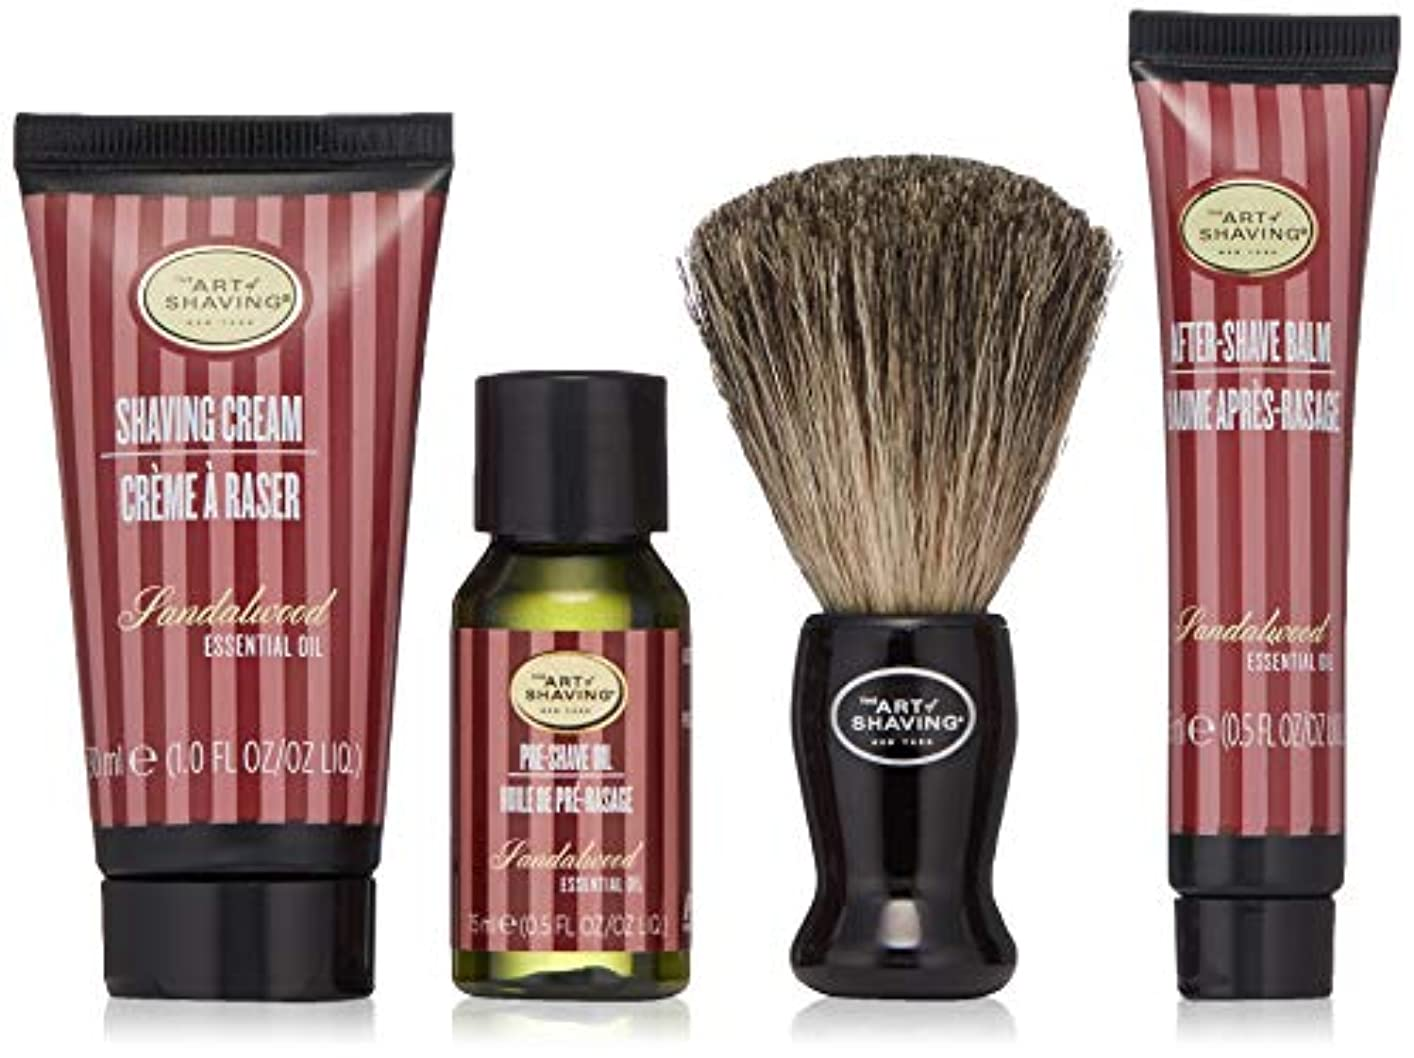 意味のあるフェミニン初心者アートオブシェービング Starter Kit - Sandalwood: Pre Shave Oil + Shaving Cream + After Shave Balm + Brush + Bag 4pcs + 1Bag並行輸入品